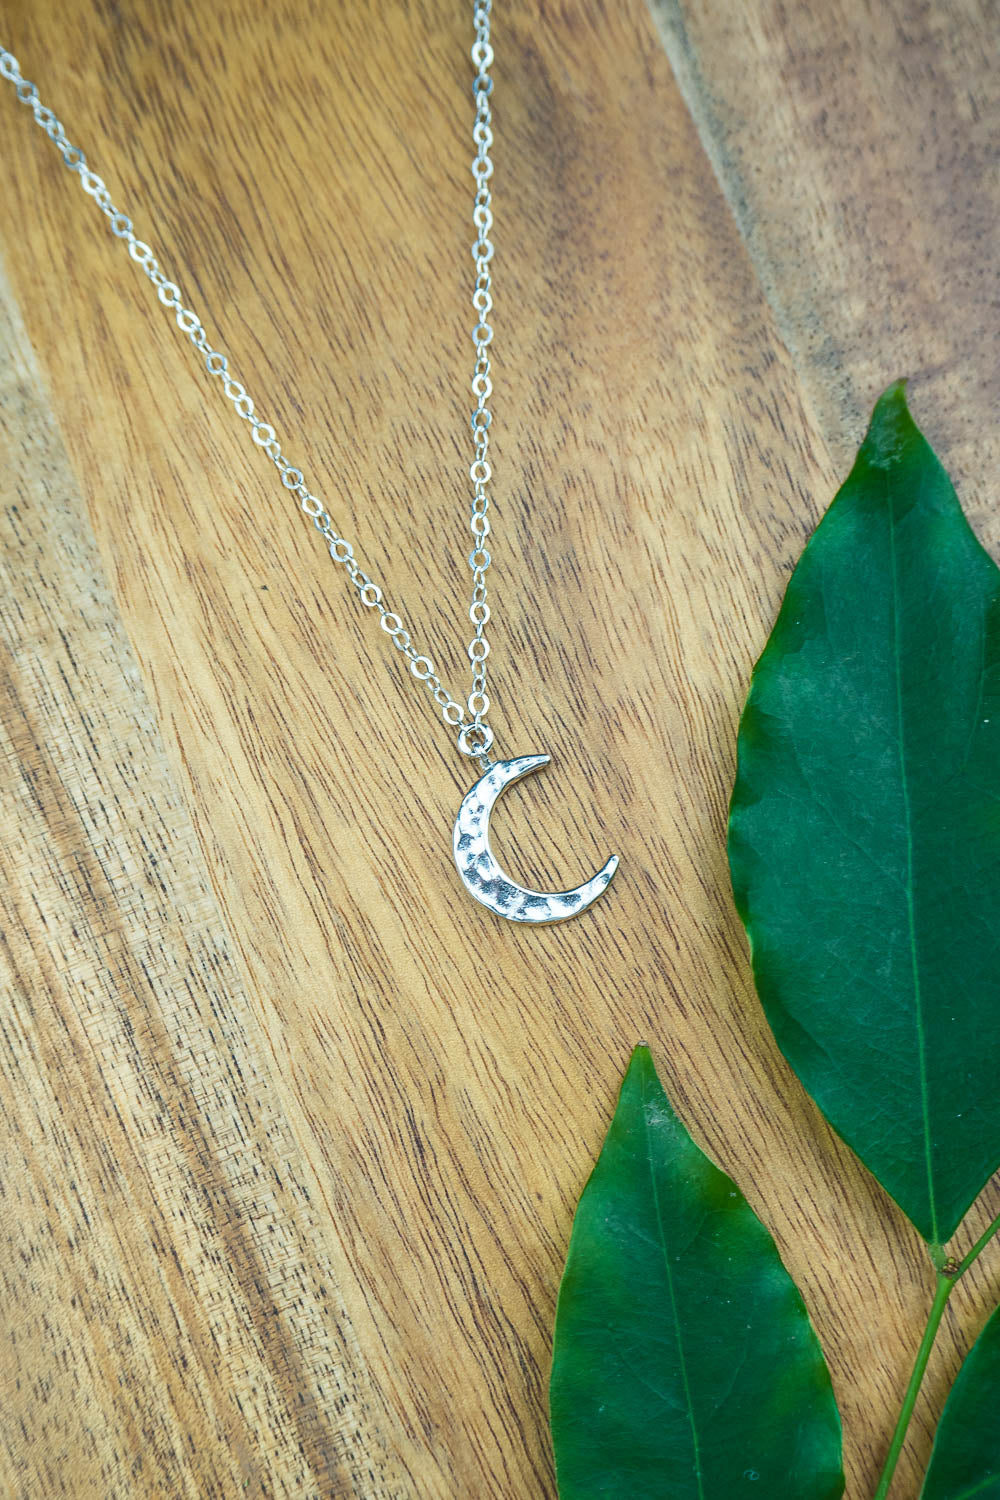 Silver Crescent Moon Necklace - Luna Tide